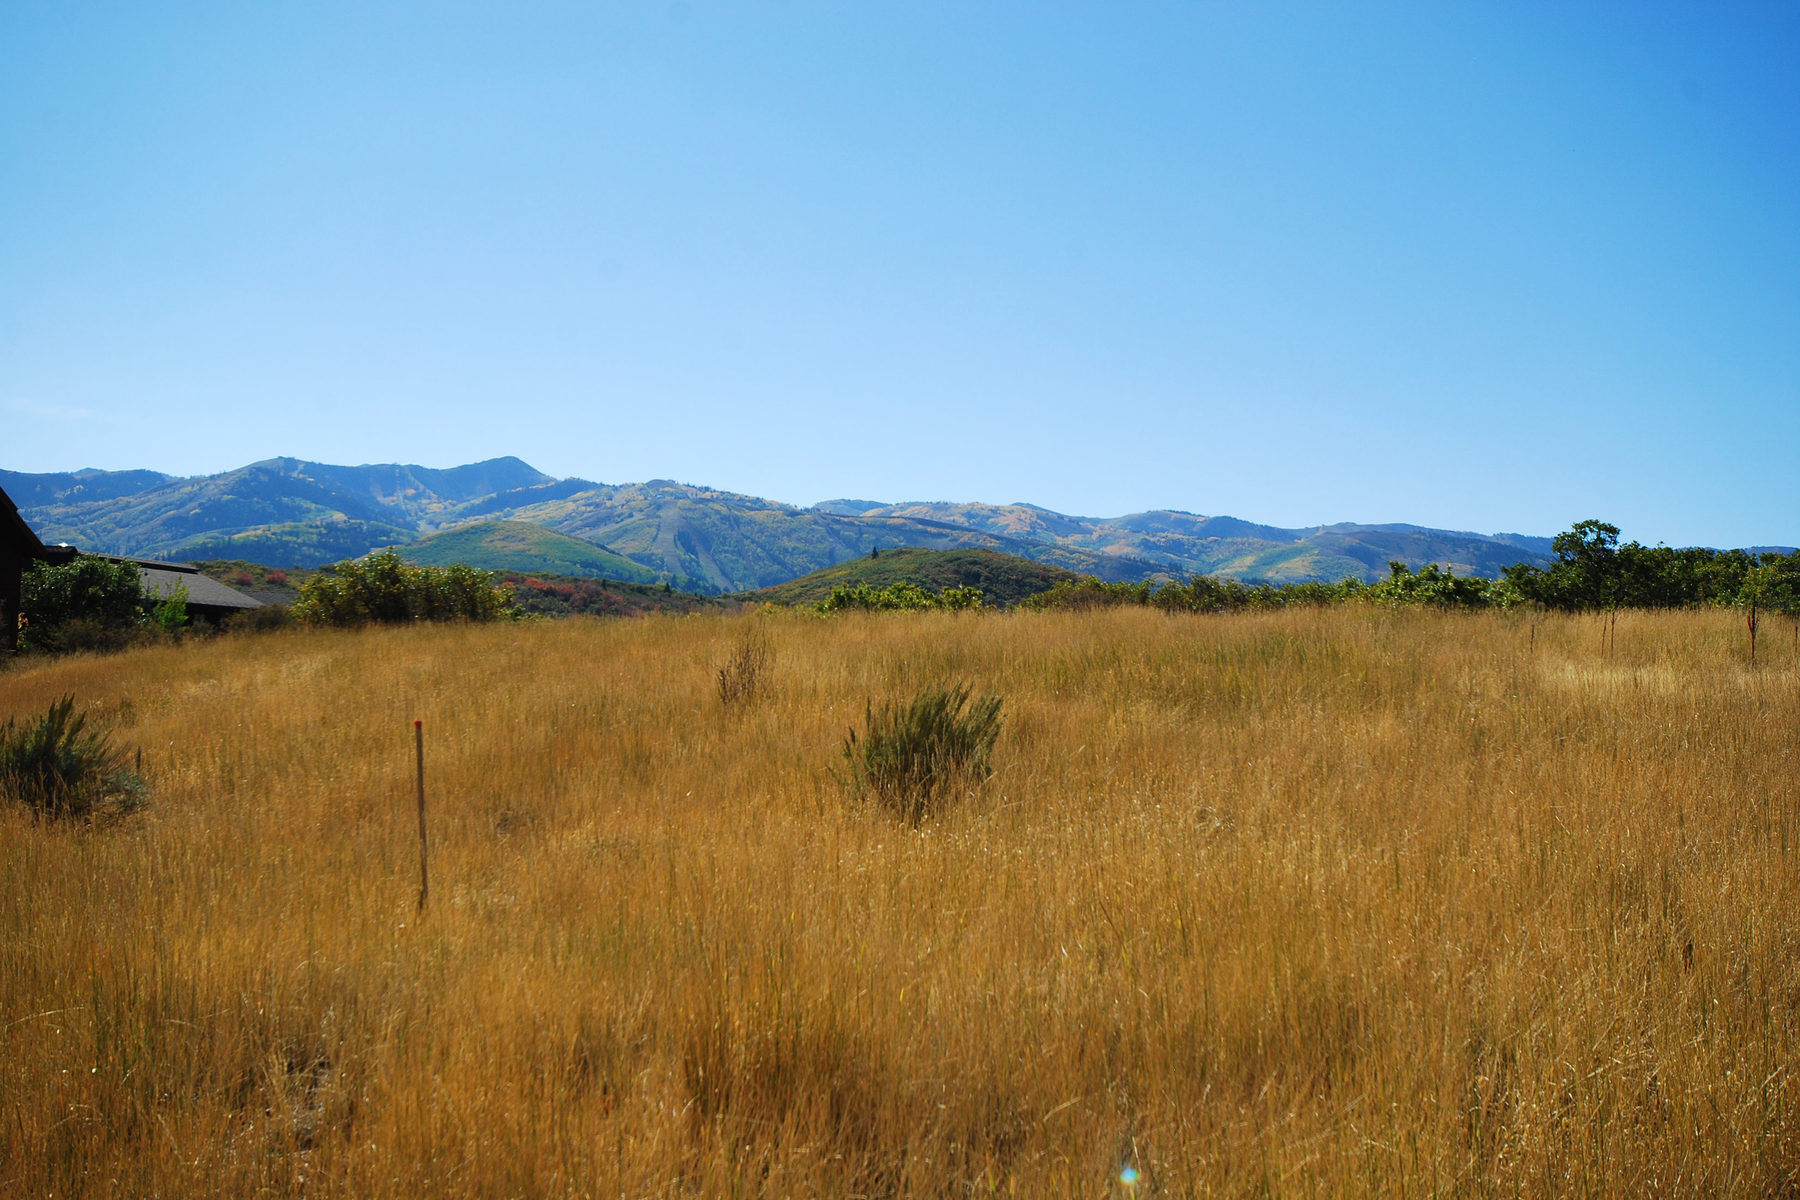 Property For Sale at .34 Acre lot in lower Deer Valley